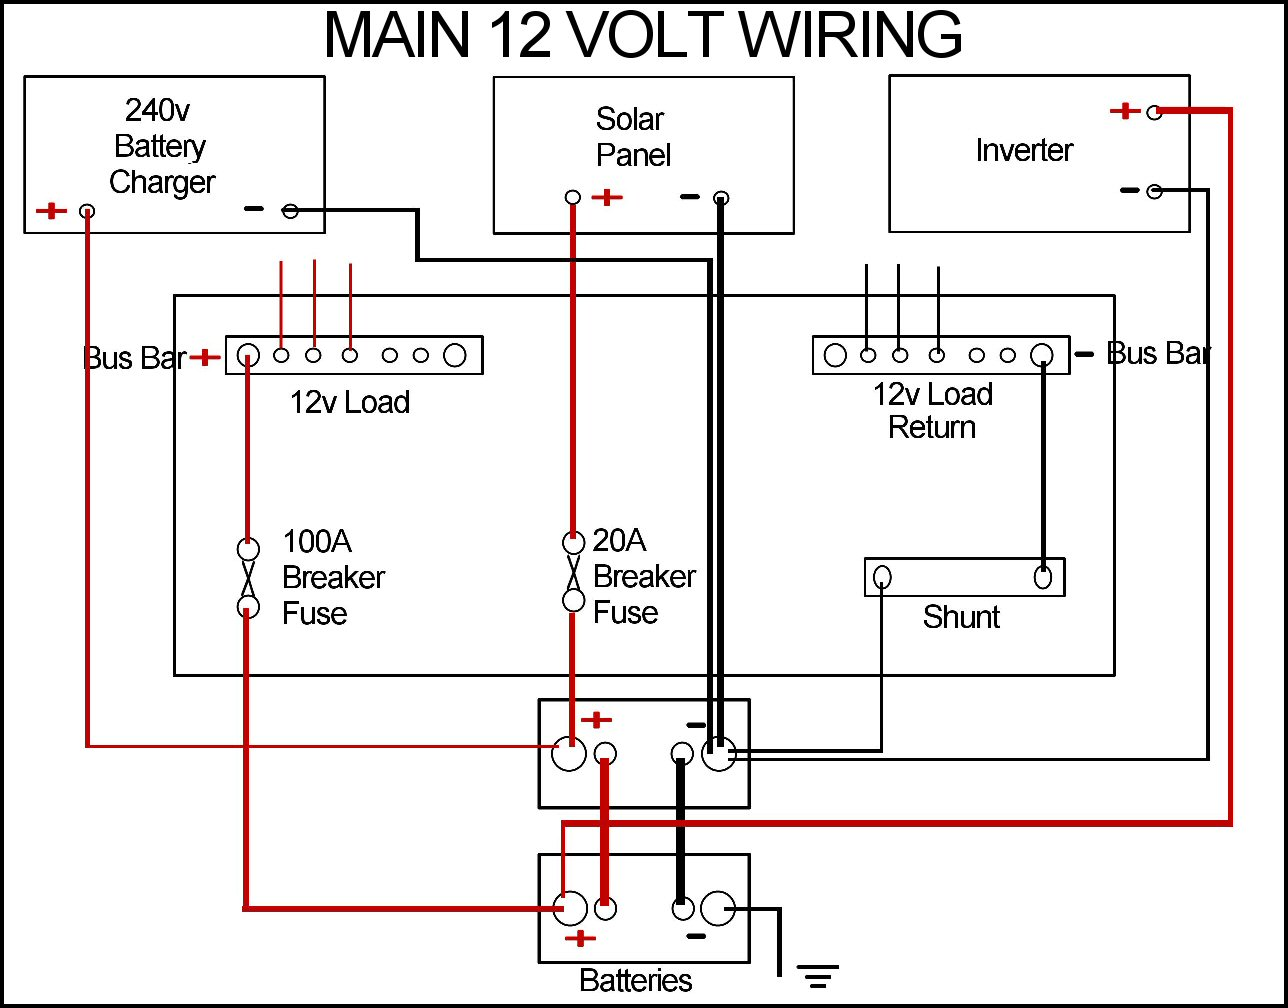 camper wiring diagram 20a wiring diagrams trailer lights diagram camper wiring diagram 20a [ 1288 x 1008 Pixel ]